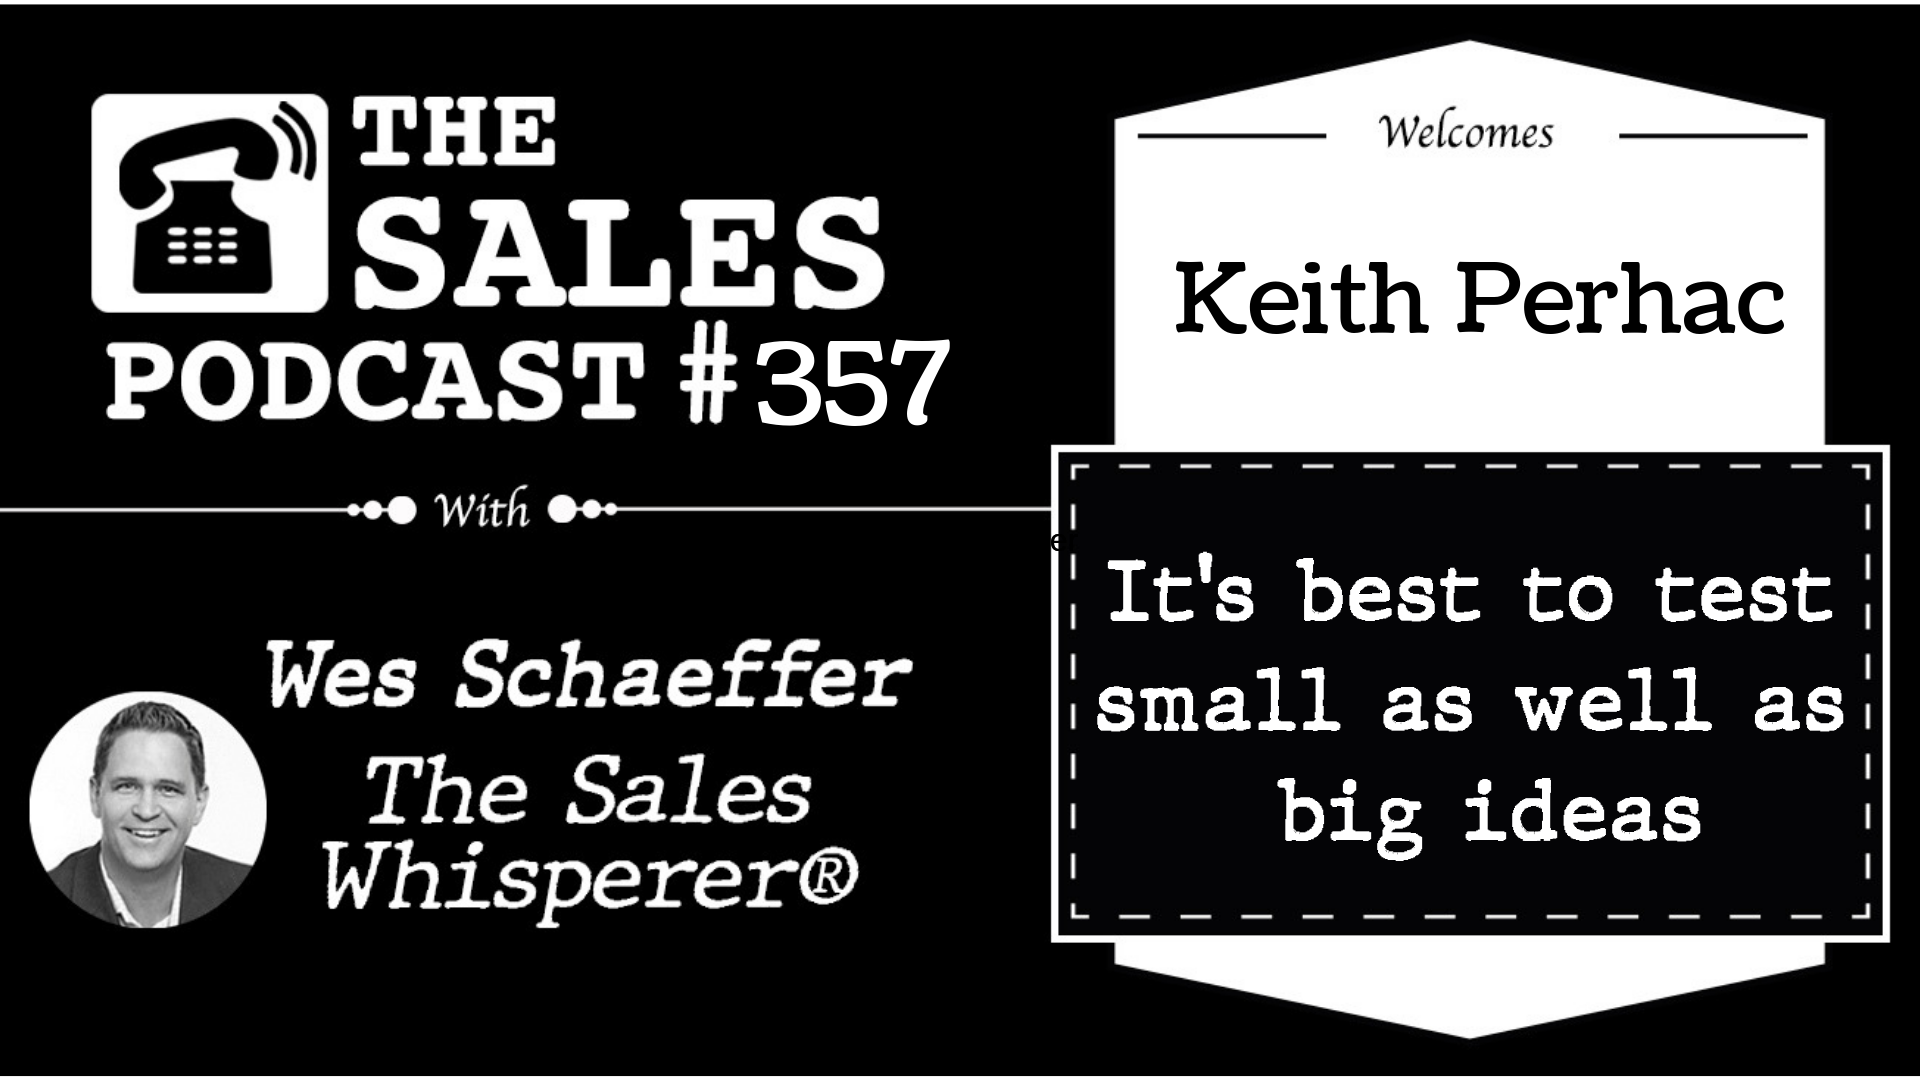 Keith Perhac Segment Your List To Grow Your Sales